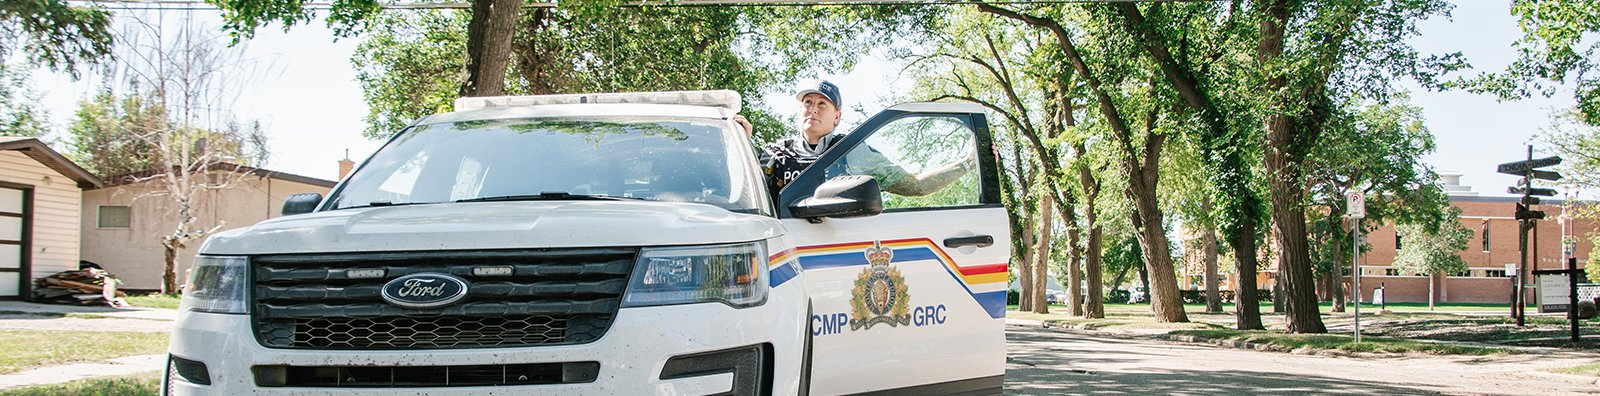 RCMP officer with RCMP vehicle